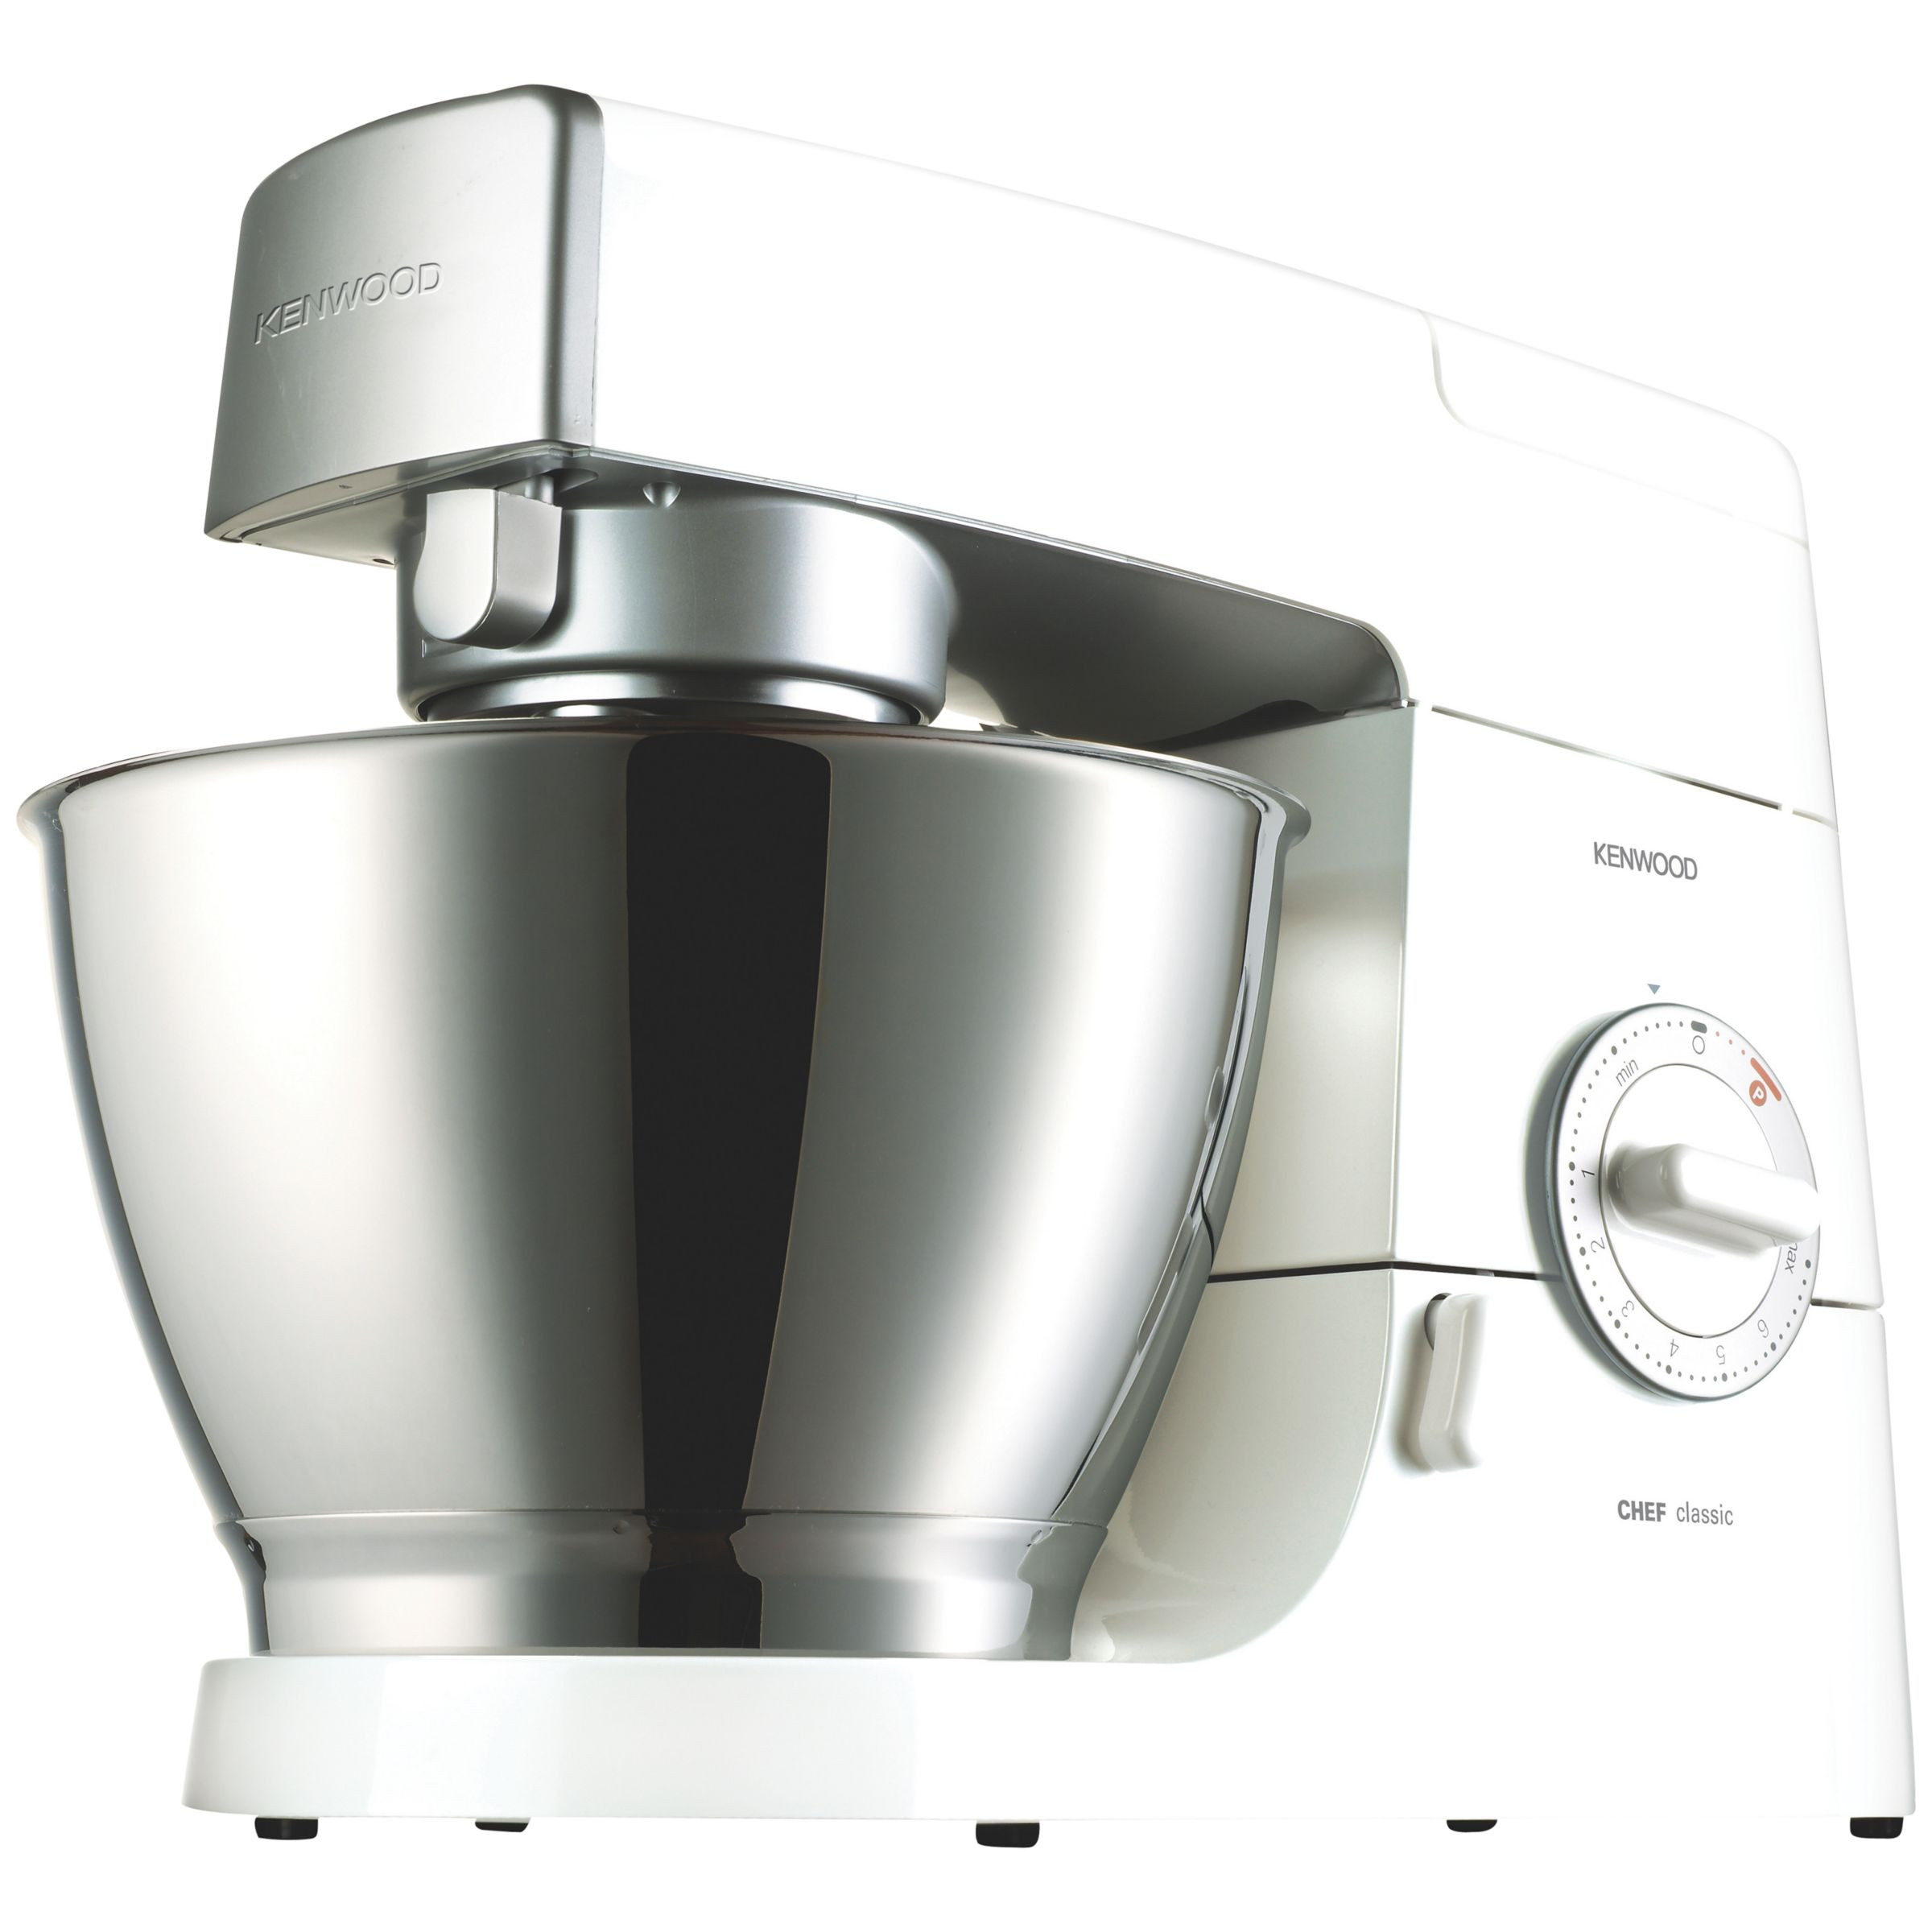 Kenwood Km336 Food Mixer Compare Prices At Foundem